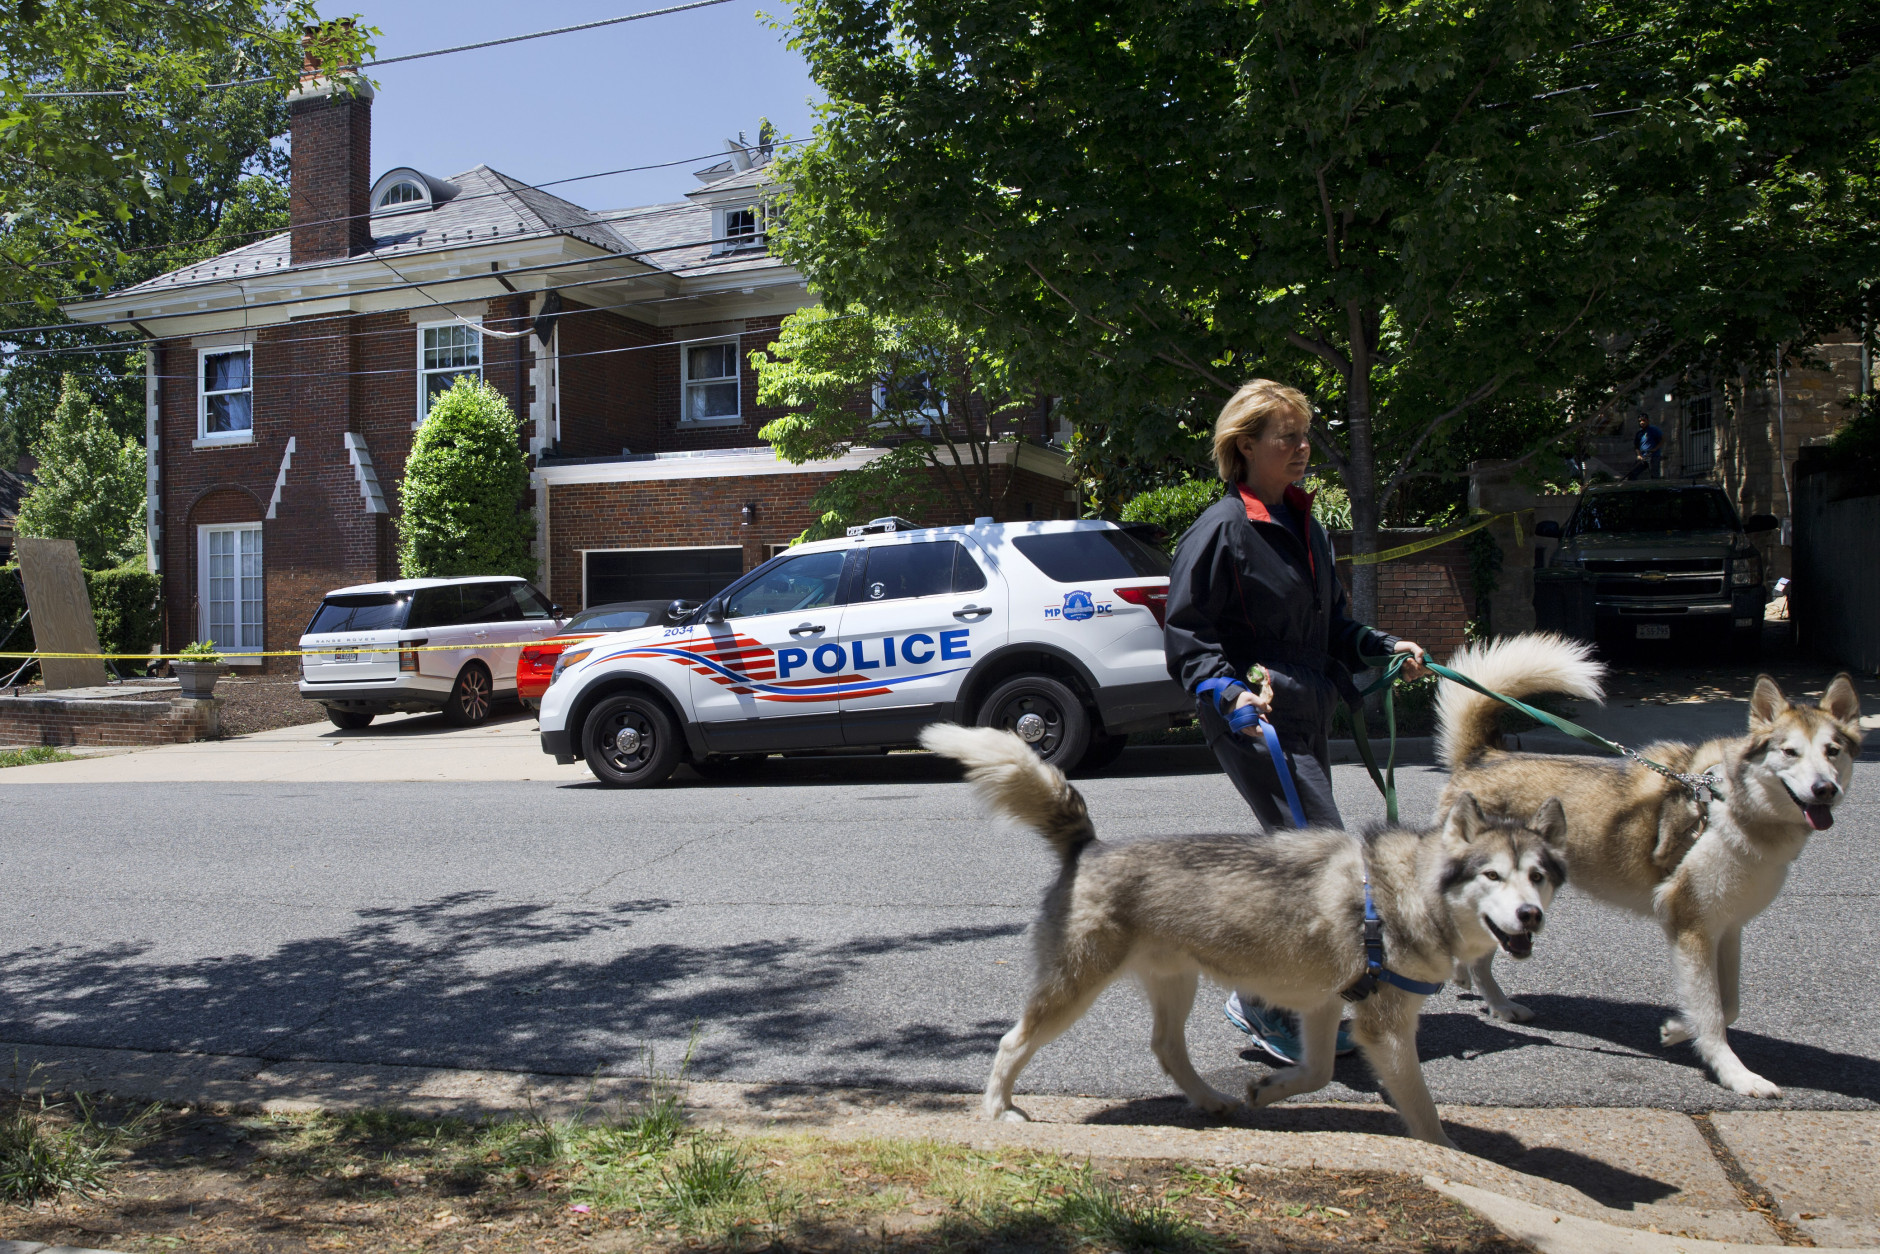 A woman walks her dogs past the fire-damaged multimillion-dollar home in northwest Washington home, Friday May 22, 2015, where 46-year-old Savvas Savopoulos, his 47-year-old wife, Amy Savopoulos, the couple's 10-year-old son Philip, and housekeeper Veralicia Figueroa were found dead May 14. U.S. marshals and police arrested a dangerous ex-convict and took his five companions into custody, safely ending a multistate manhunt in the slayings of a wealthy Washington family and their housekeeper. The fugitive task force tracked Daron Dylon Wint to New York and back before they caught up with him late Thursday (AP Photo/Jacquelyn Martin)